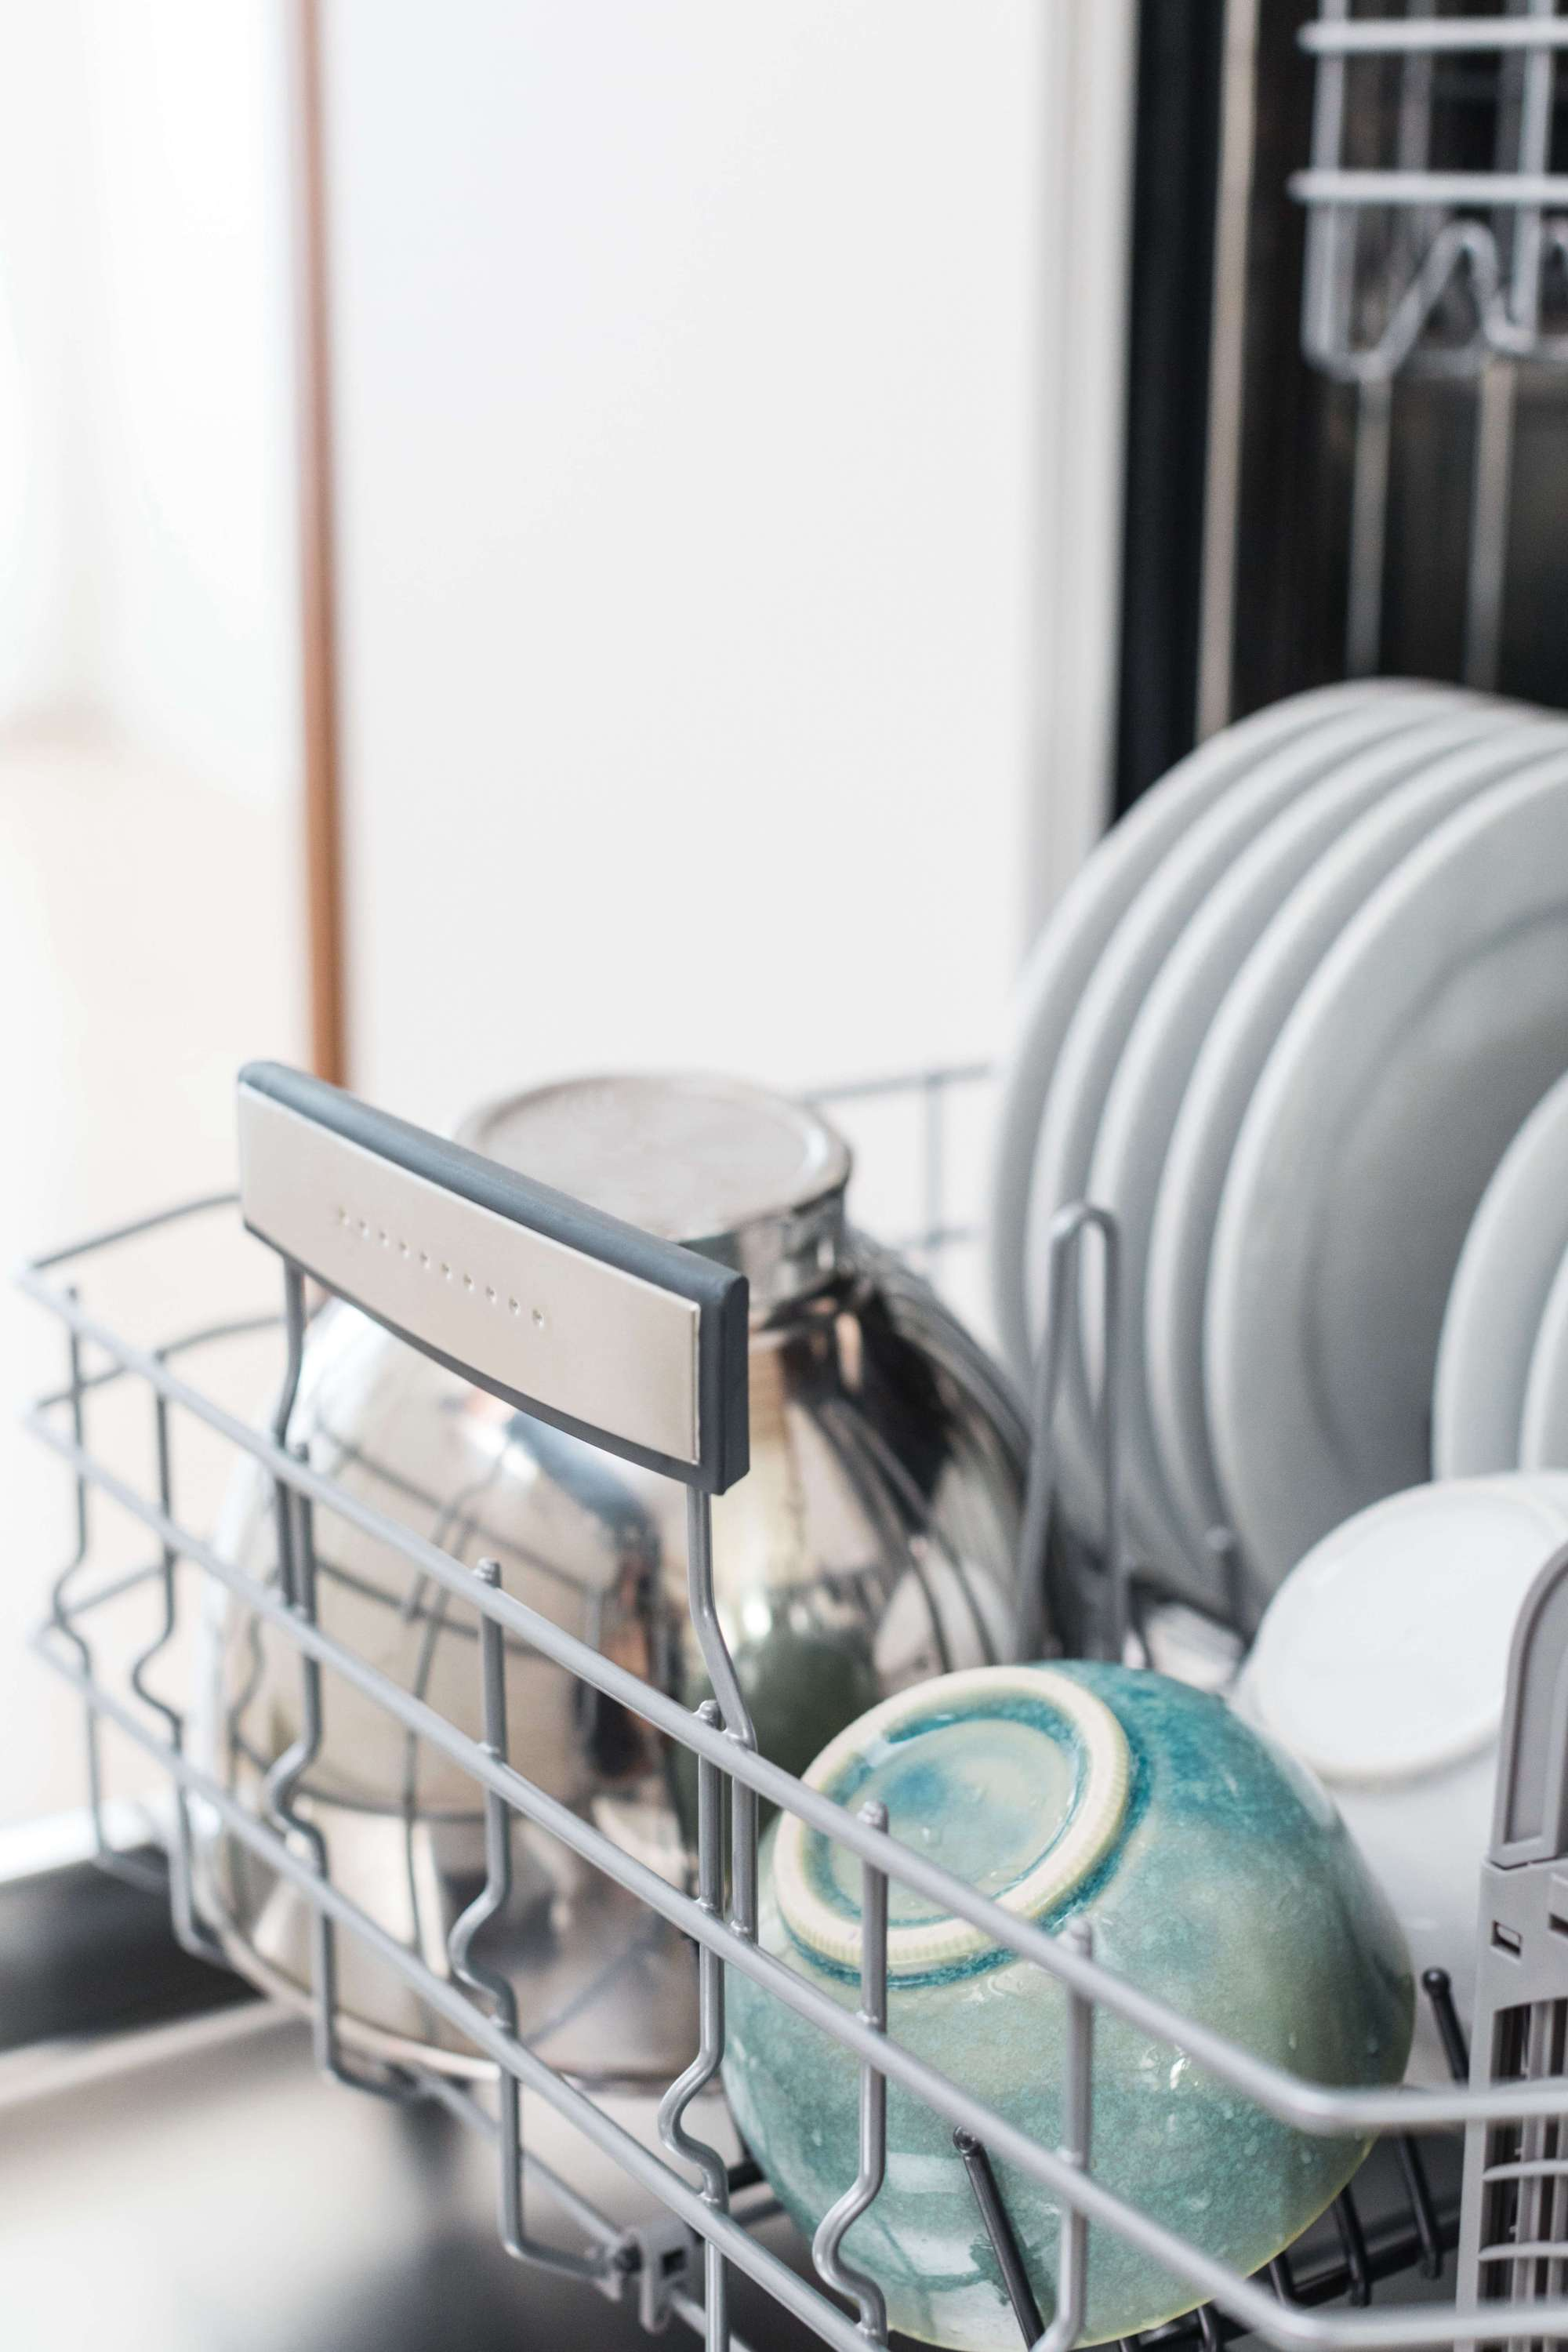 hight resolution of expert advice from bosch how to load a dishwasher